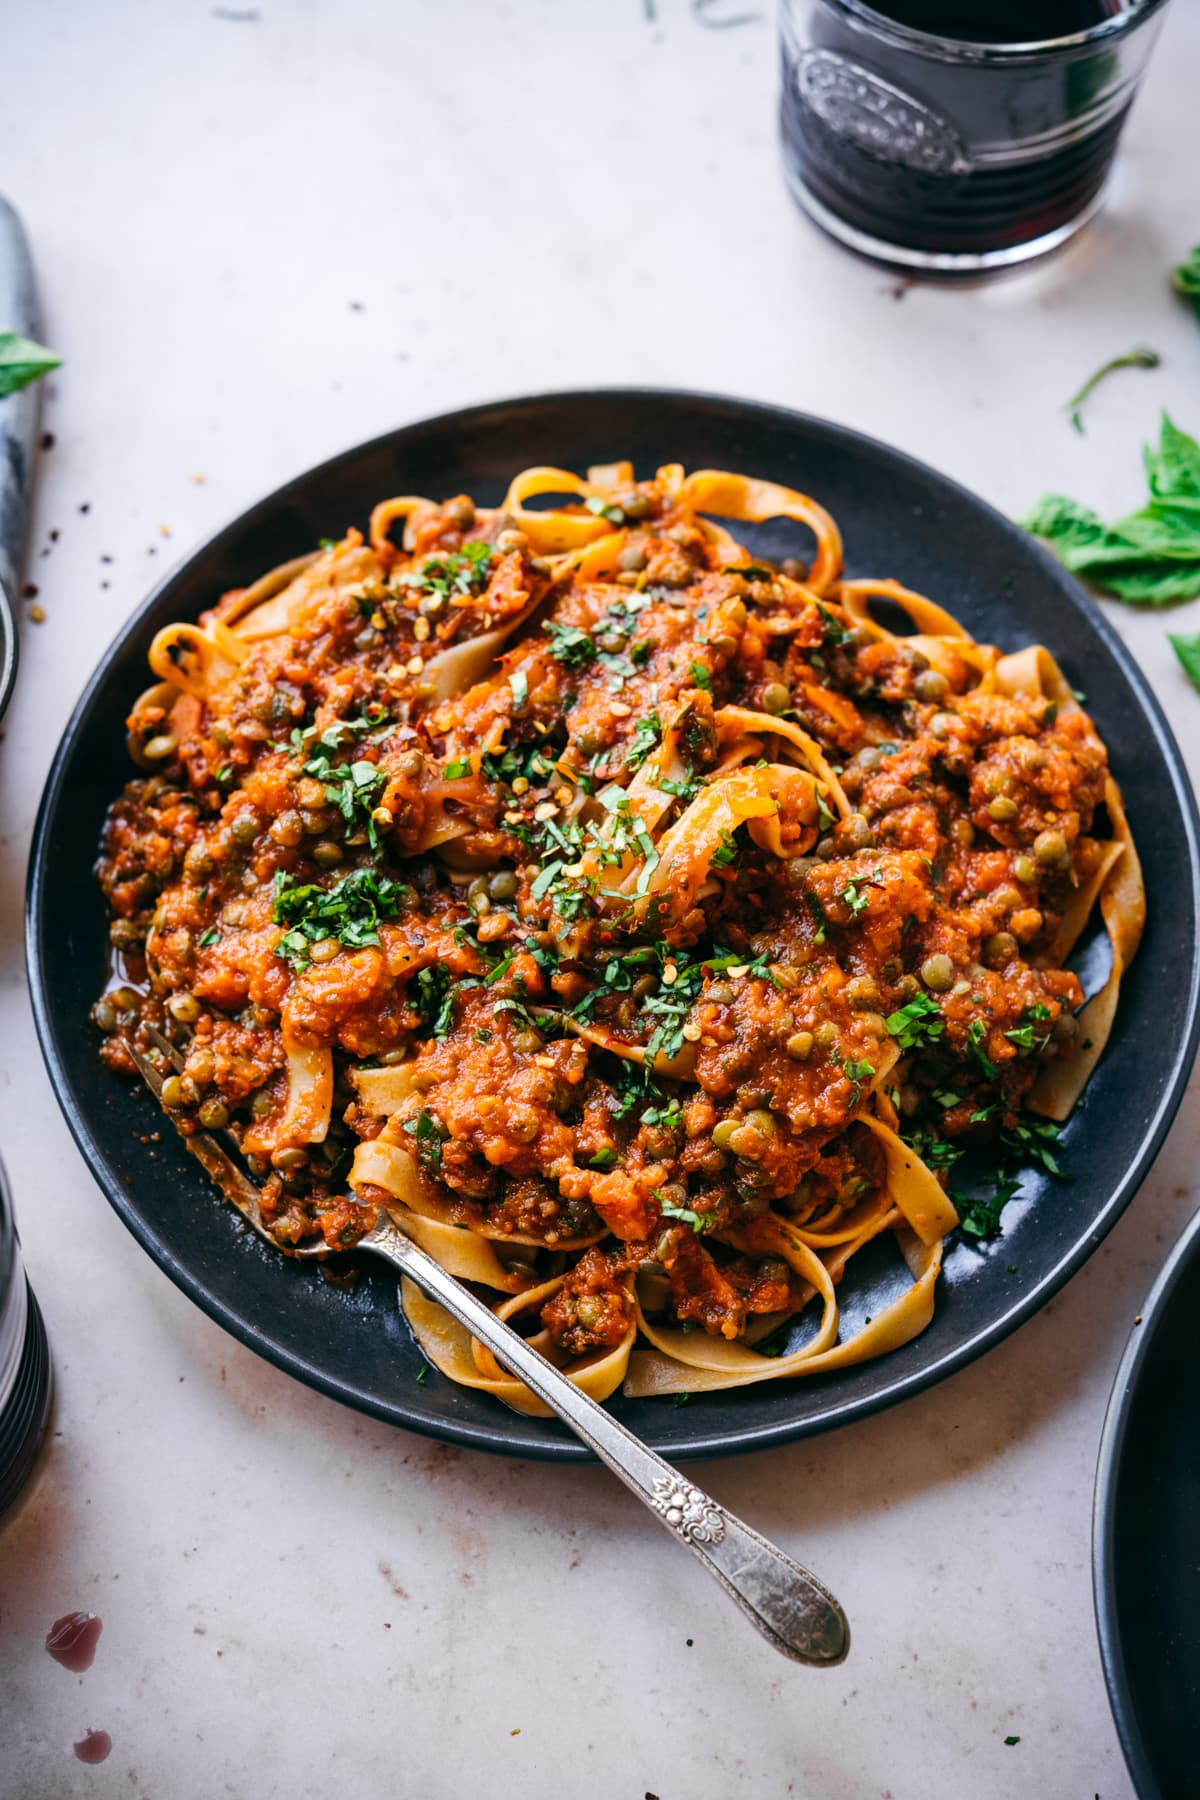 close up view of vegan lentil bolognese sauce over pasta on black plate with fork.